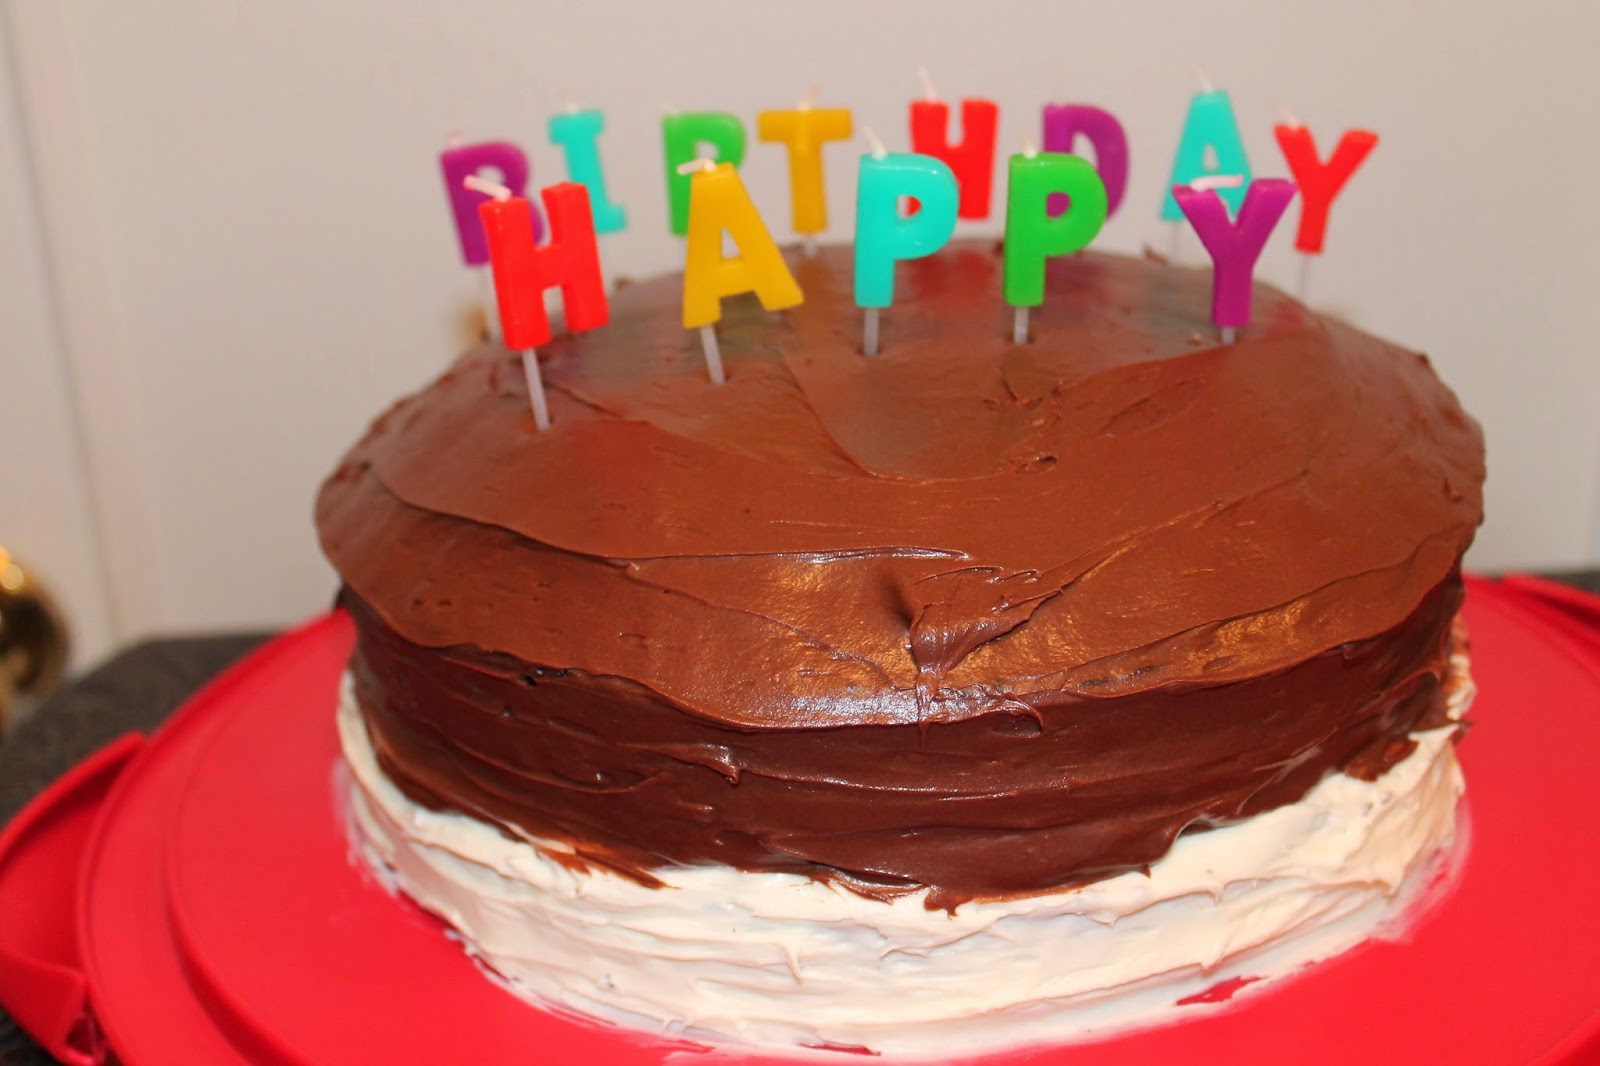 Two Tone Frosted Birthday Cake & The Little Things in Life - Easy Life Meal & Party Planning